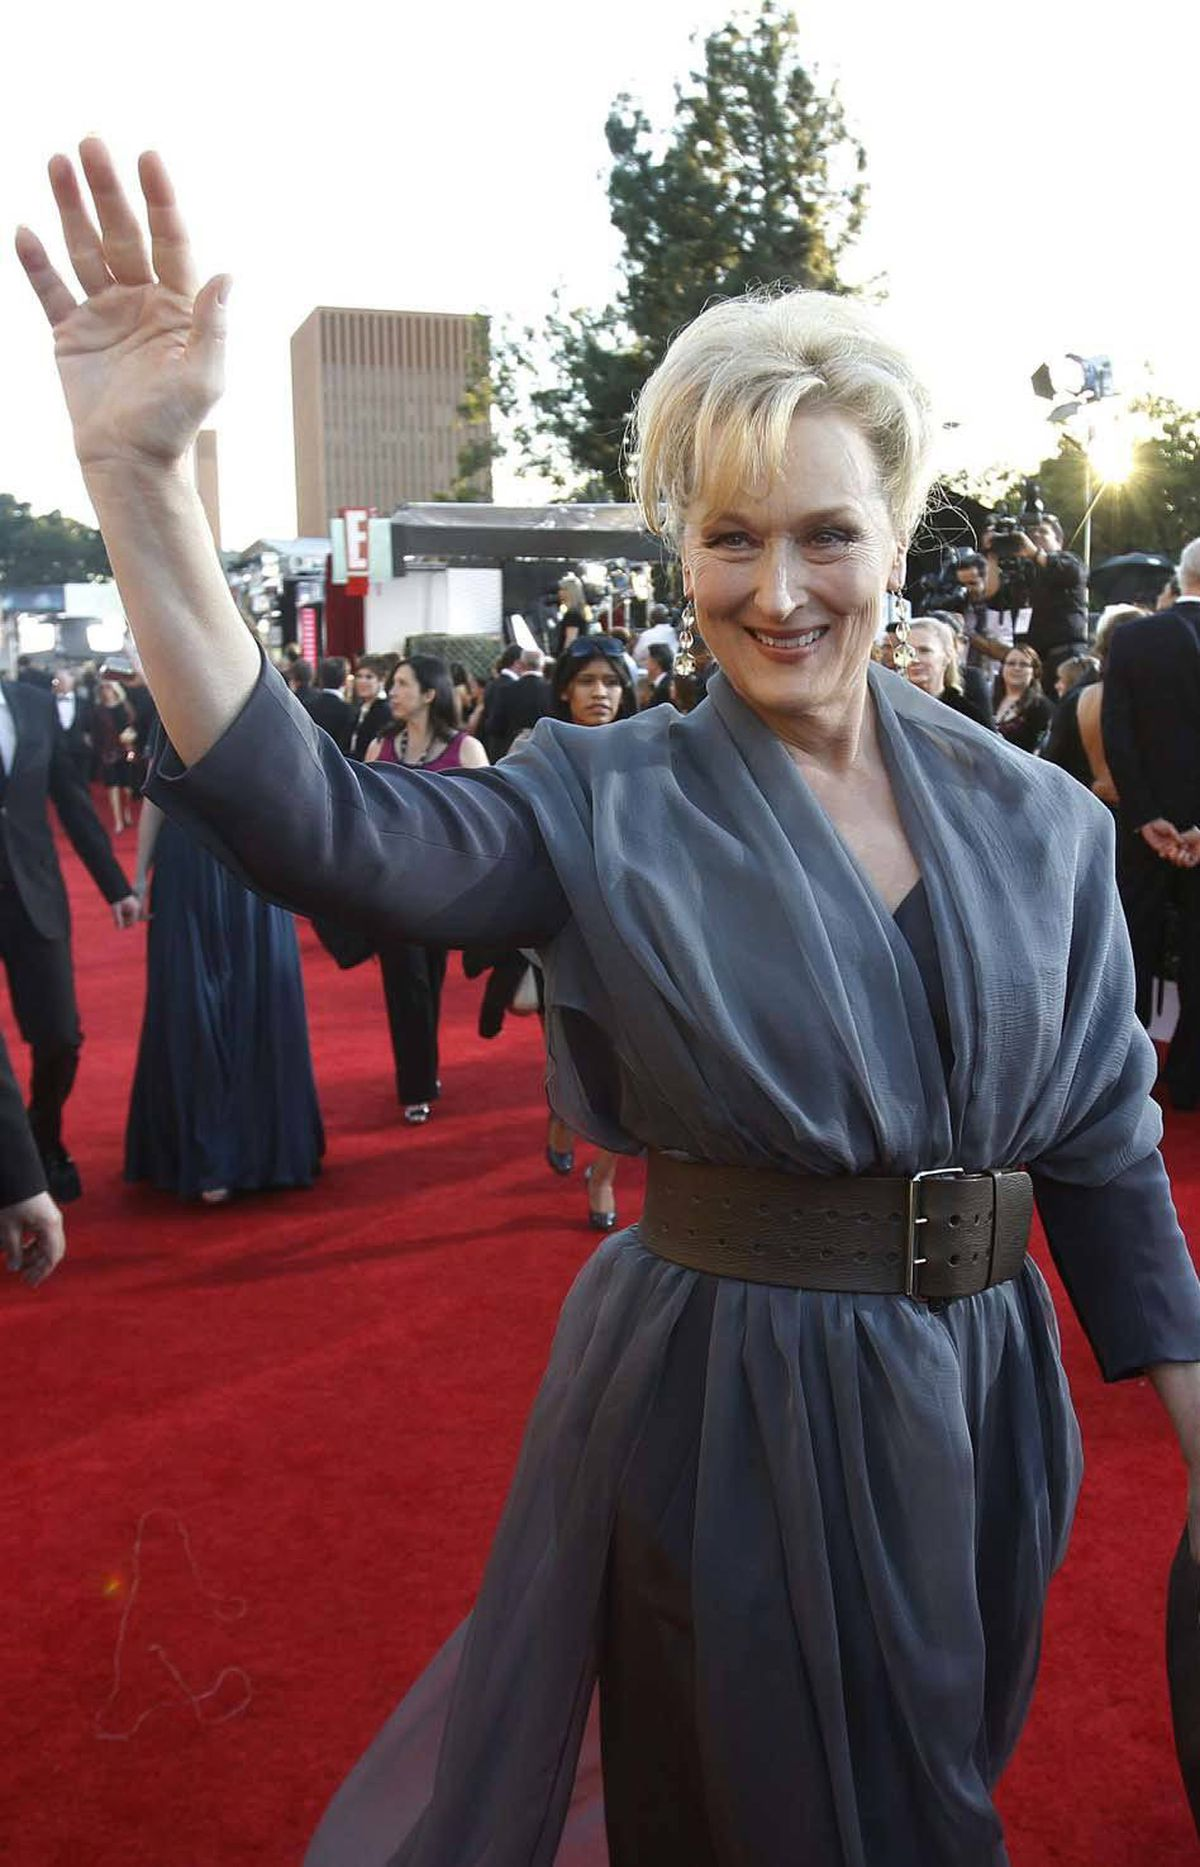 Meryl Streep, seen here at the SAG awards Sunday, does one movie about right-wing icon Margaret Thatcher and the next thing you know she's saluting crowds like this.